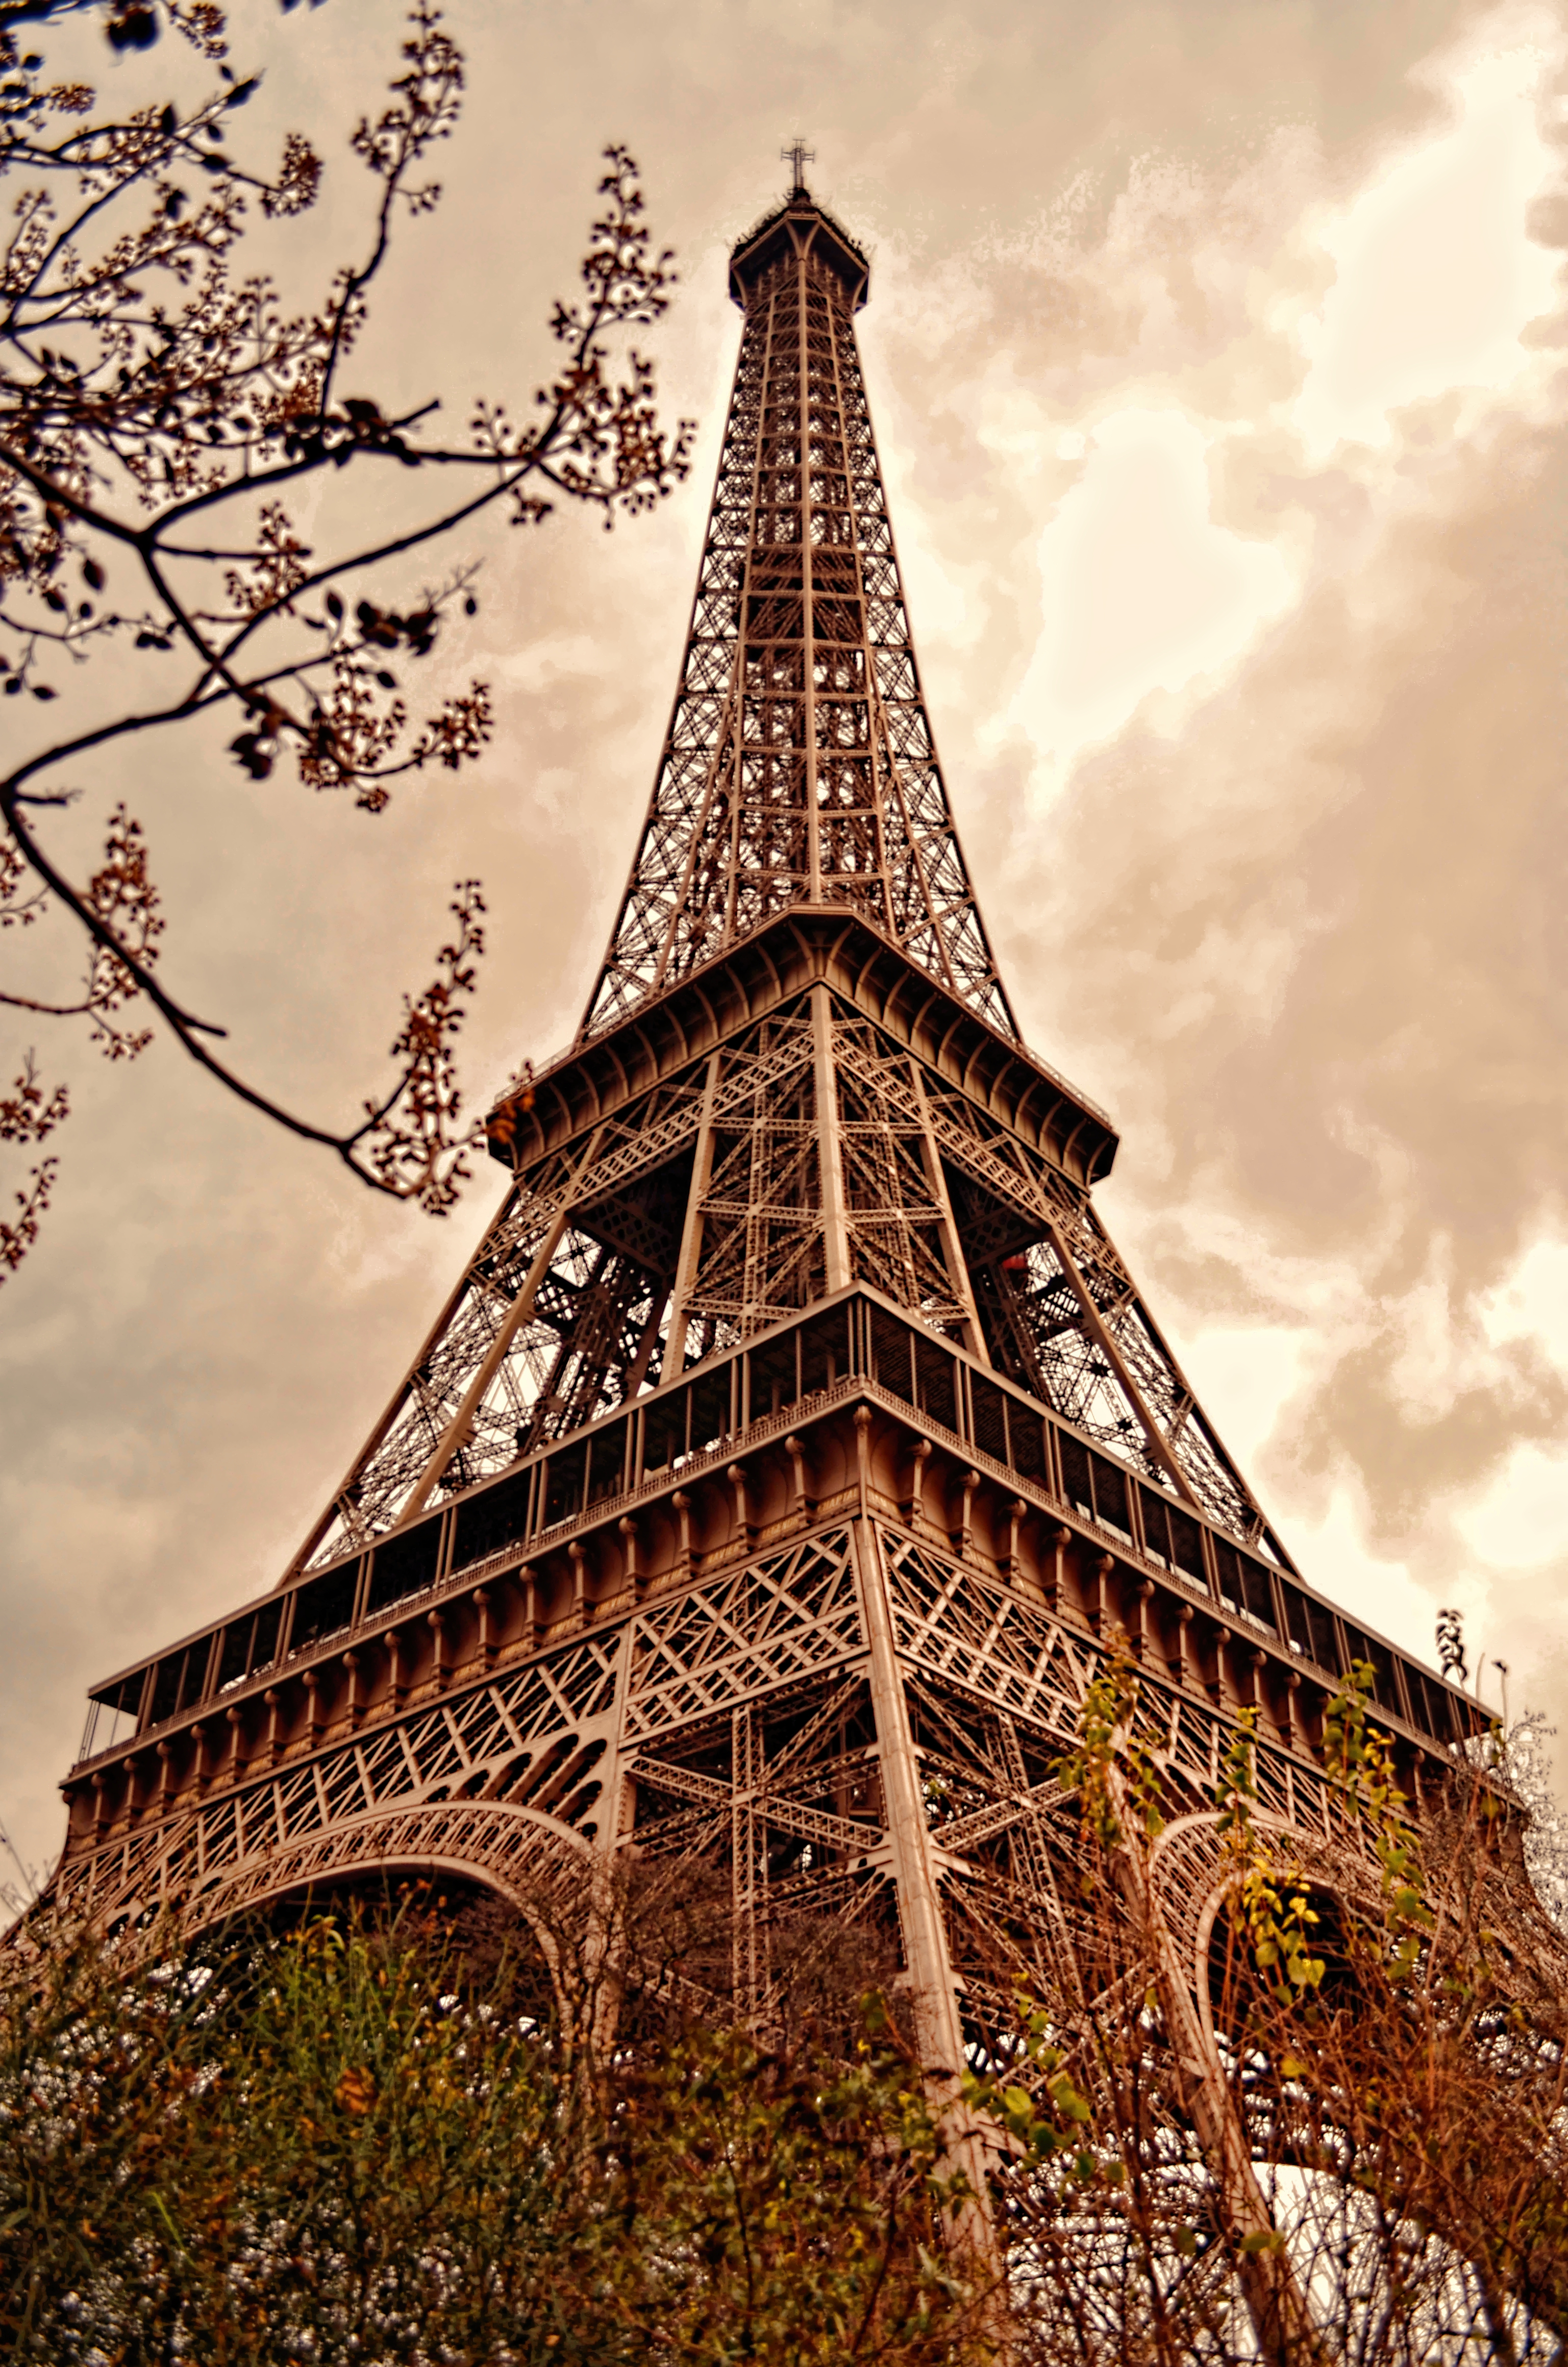 Girl New Wallpaper Download Eiffel Tower Illustration 183 Free Stock Photo